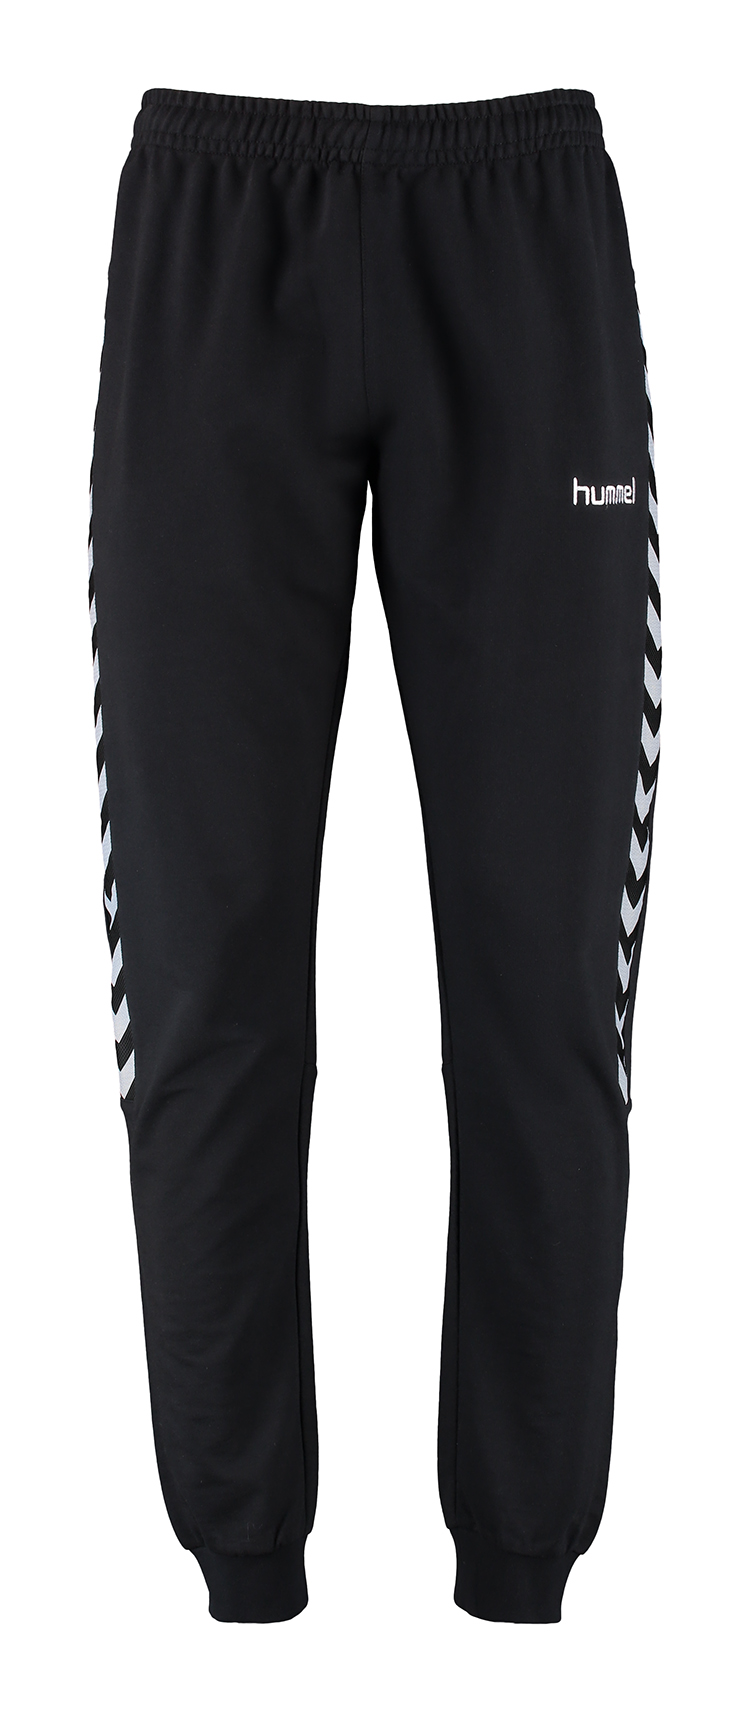 Image of   Hummel Authentic Charge Sweatpants til børn